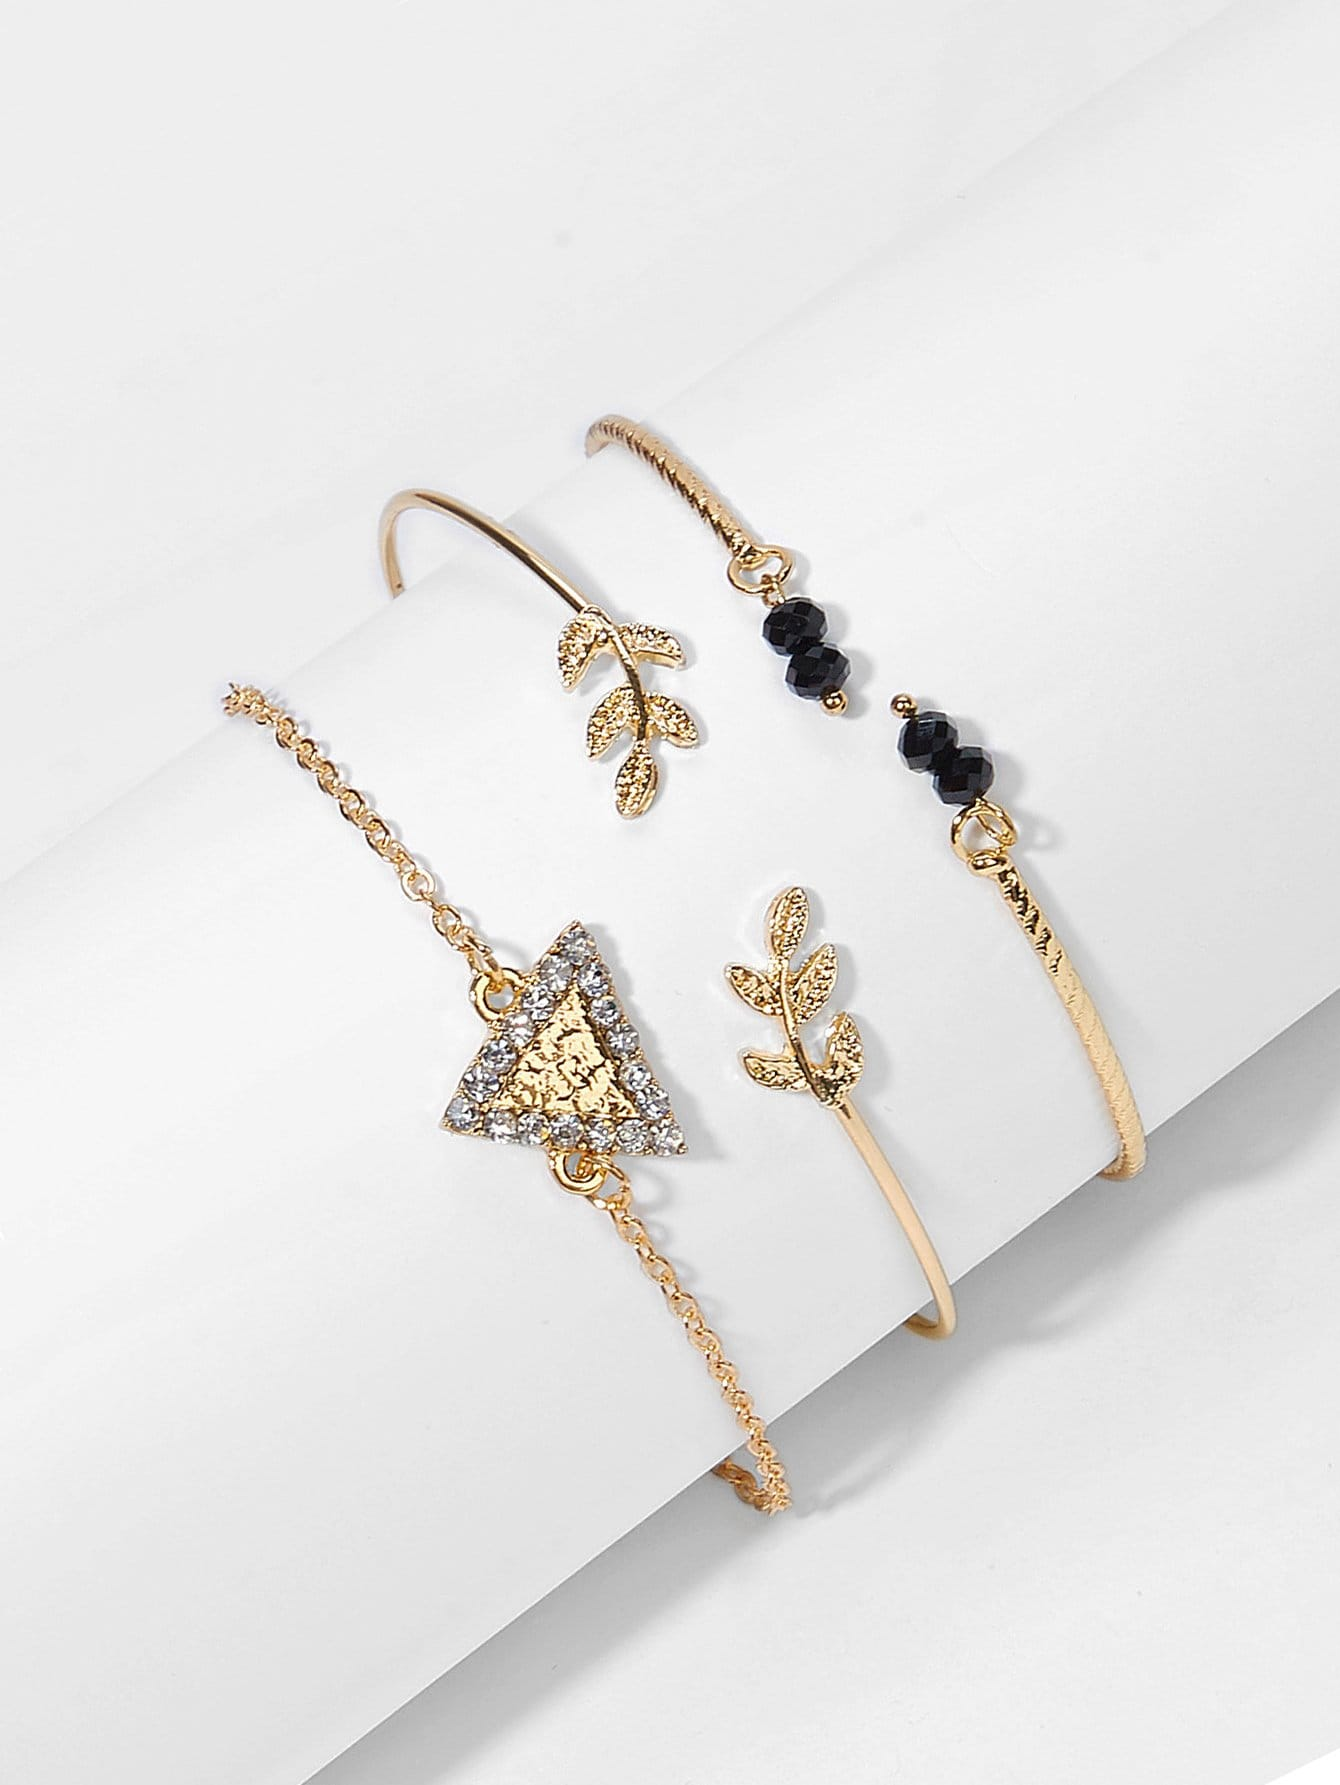 Golden 3pcs Rhinestone Metal Triangle & Leaf Cuff, Link Bracelet Set